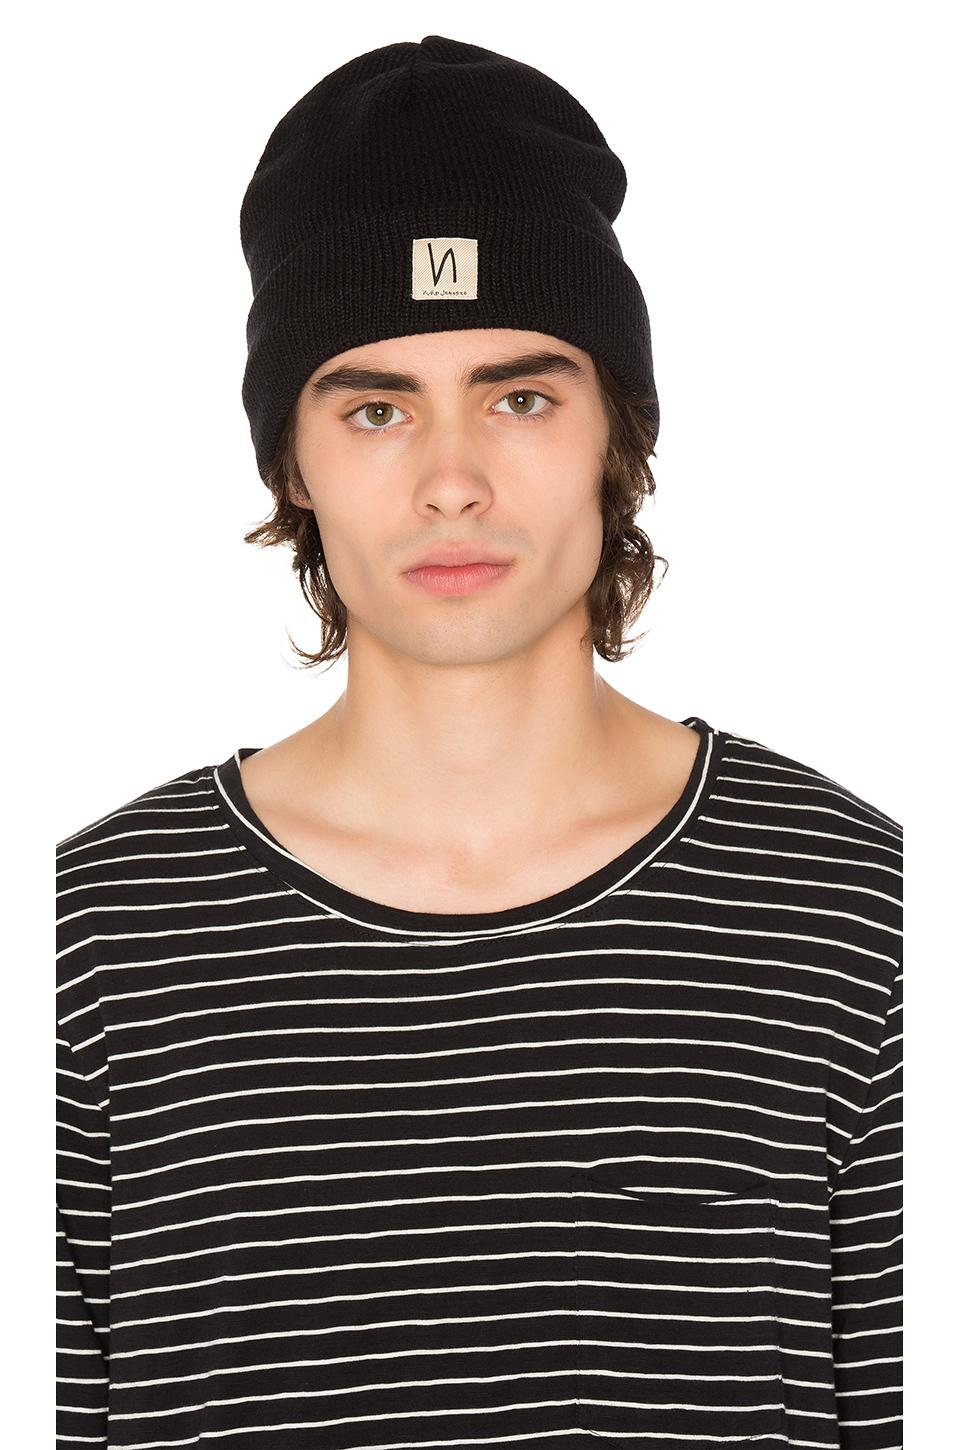 c1f6928d26e Lyst - Nudie Jeans Salomonsson Beanie in Black for Men